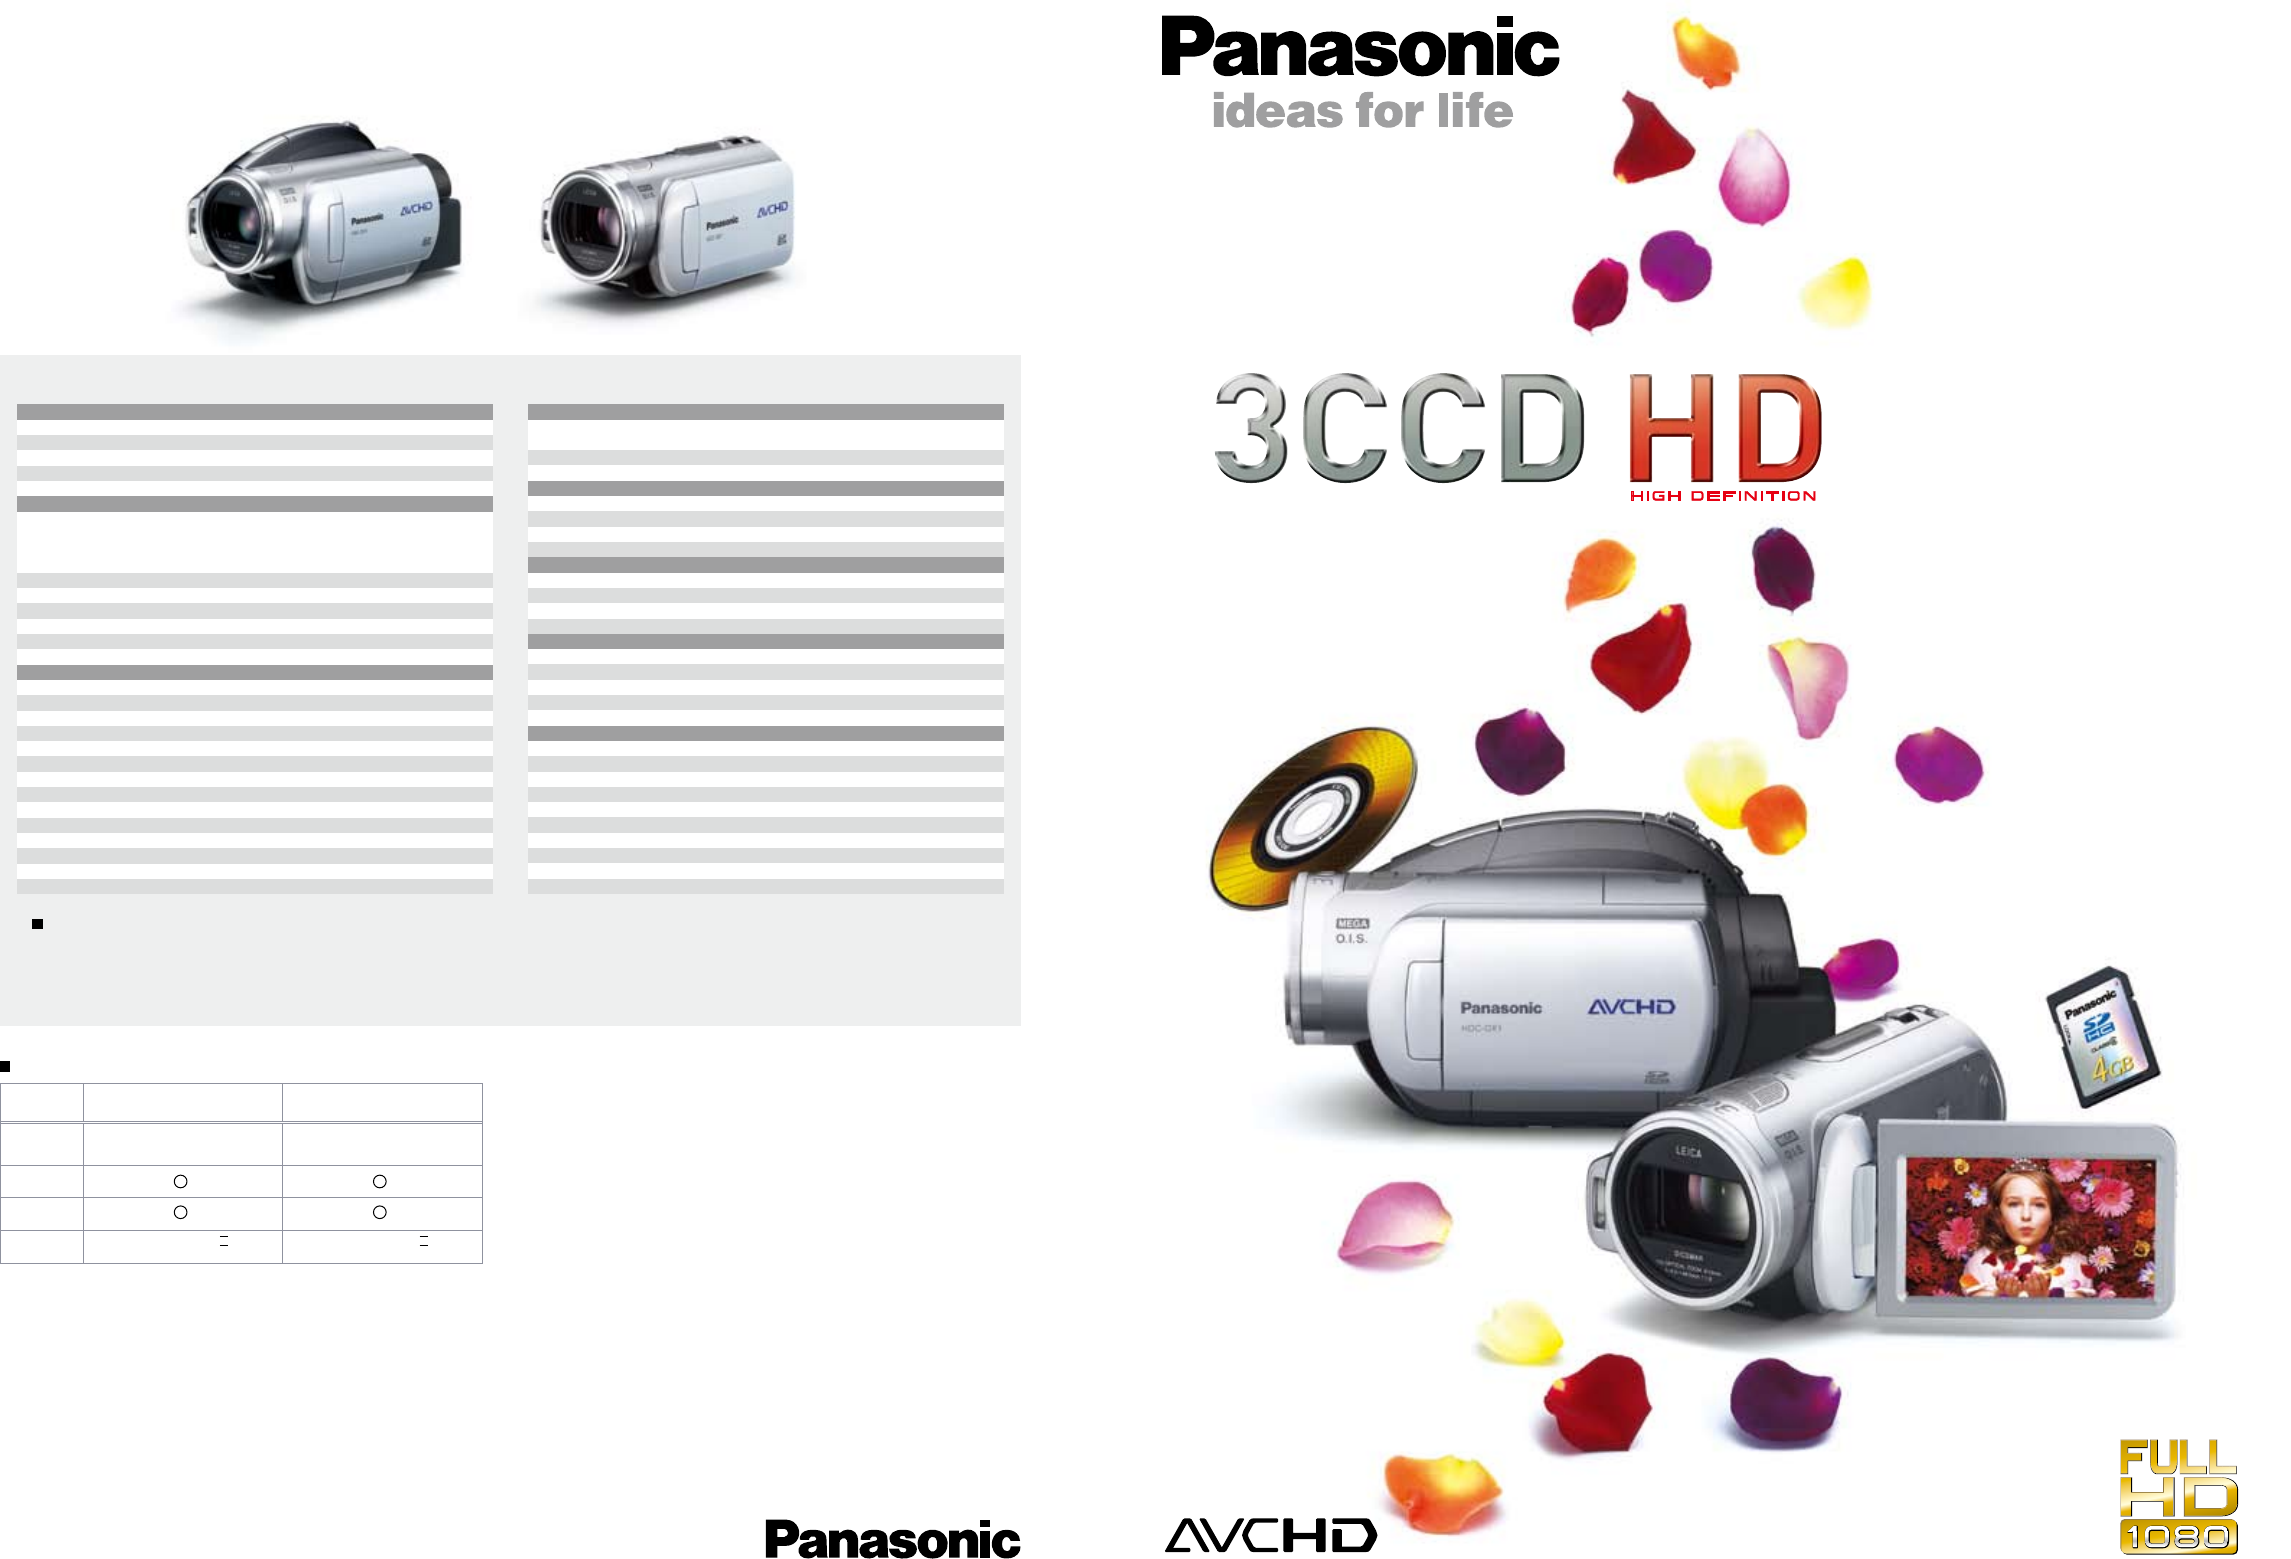 panasonic camcorder 3ccd hd user guide manualsonline com rh camera manualsonline com Panasonic 3CCD HD Camcorder Panasonic AVCCAM 3CCD